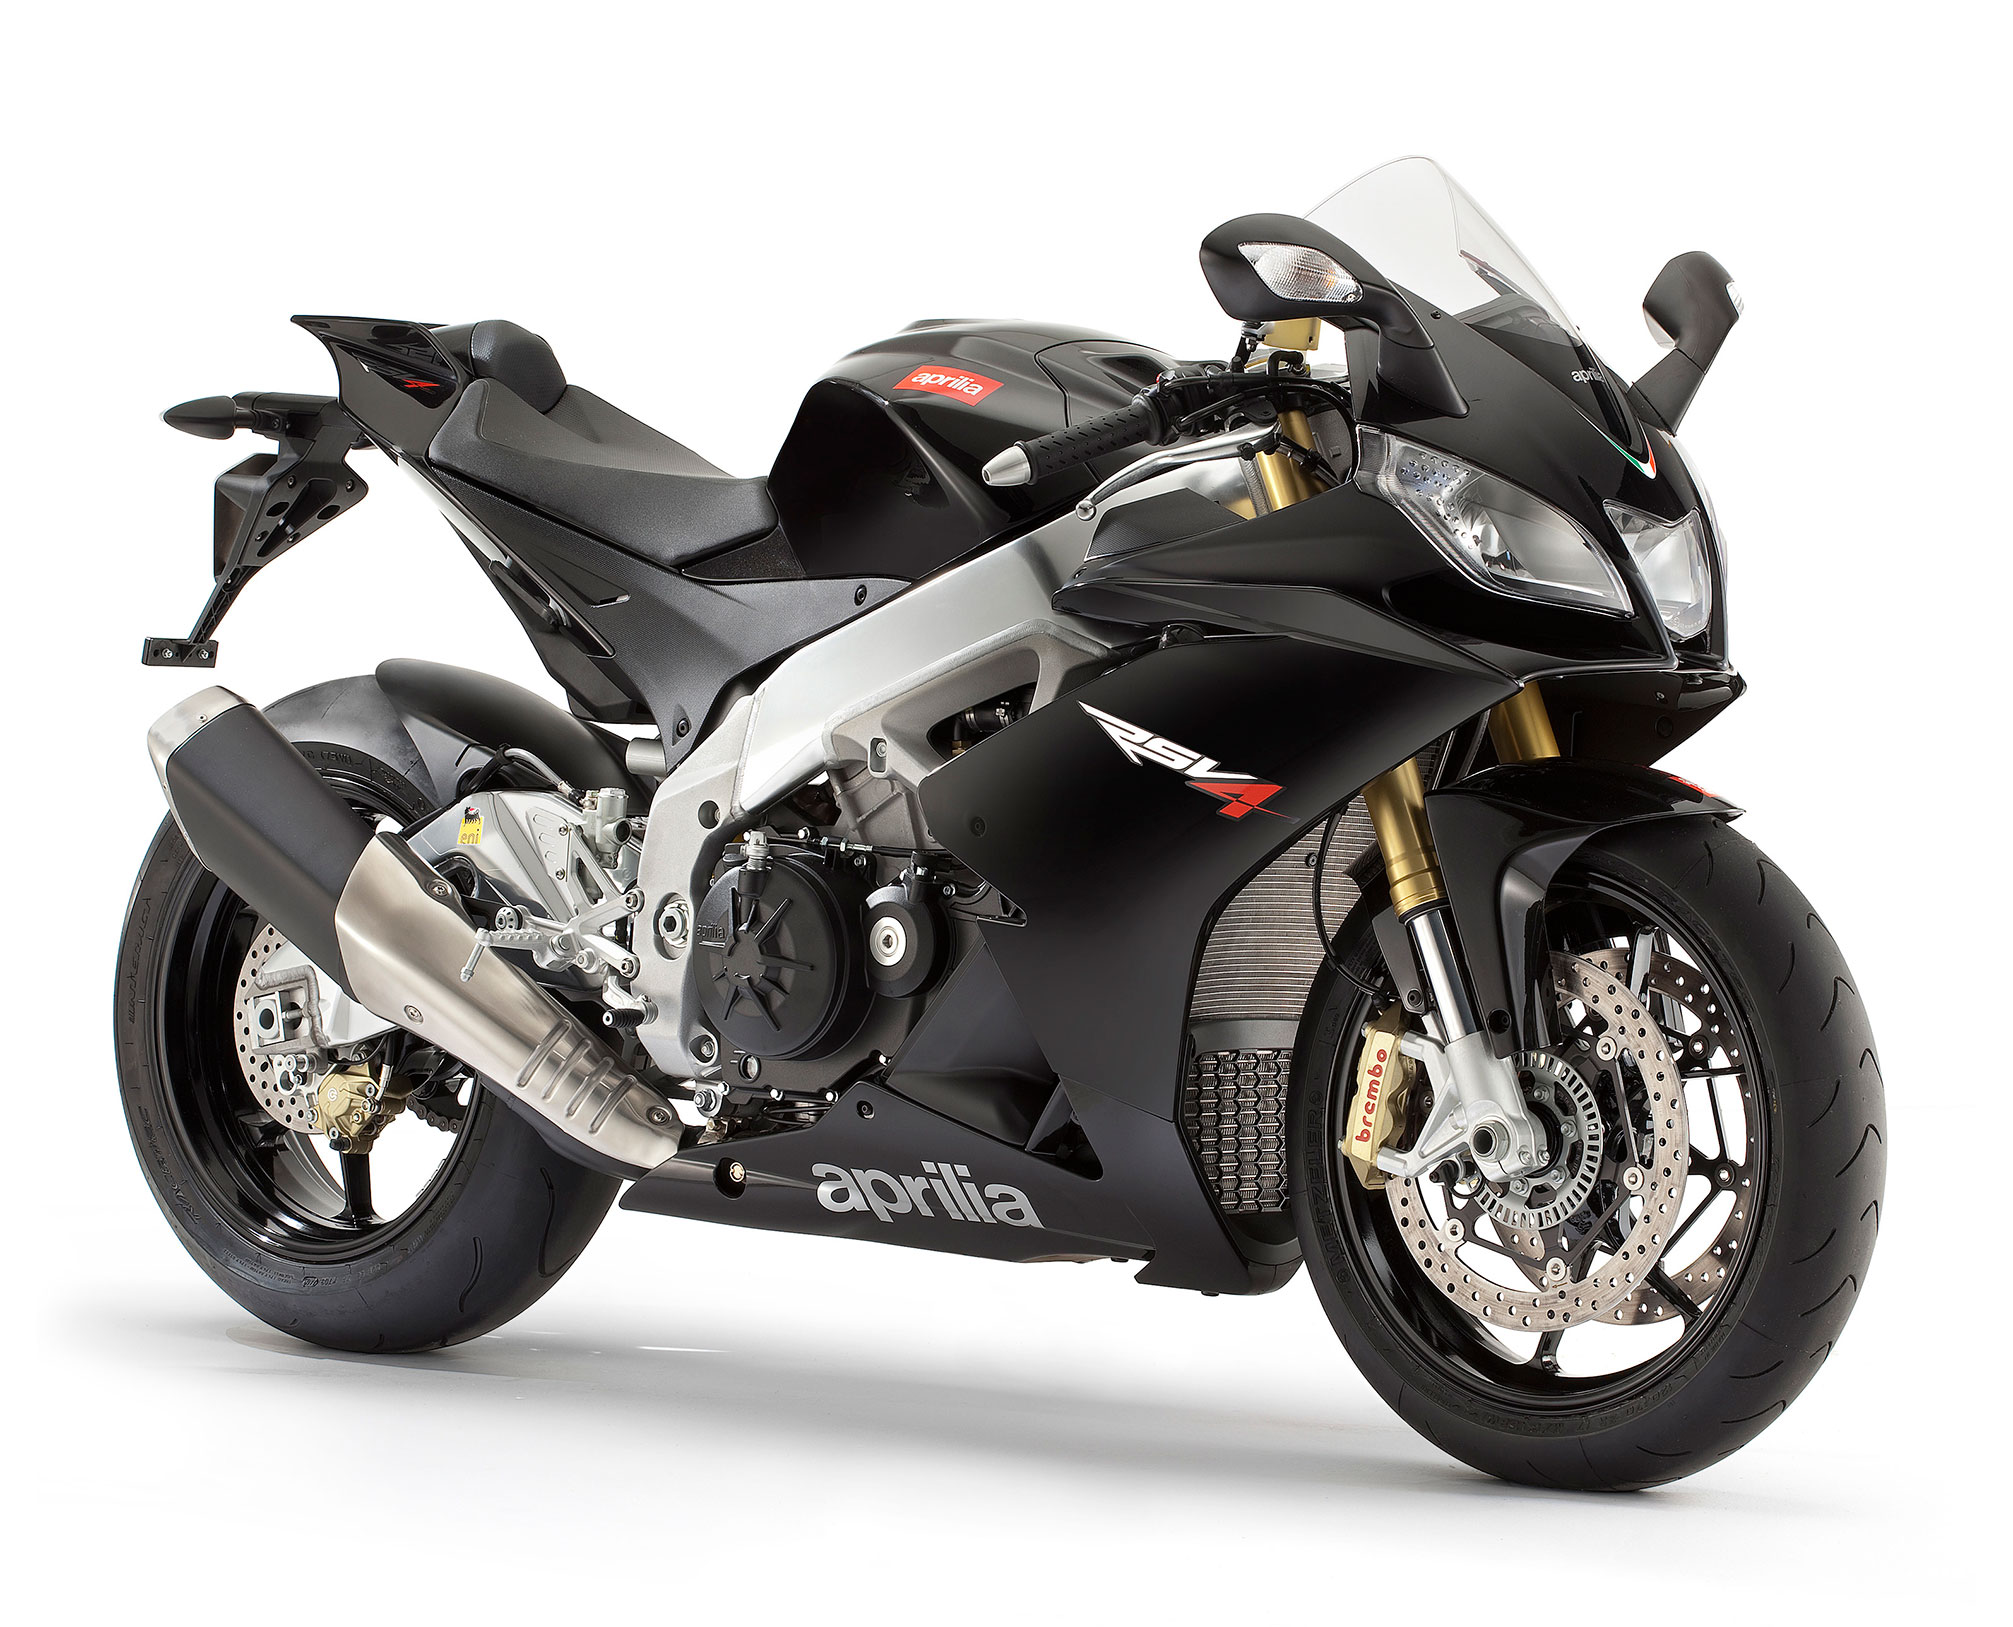 Image result for 2013 Aprilia RSV 4 R